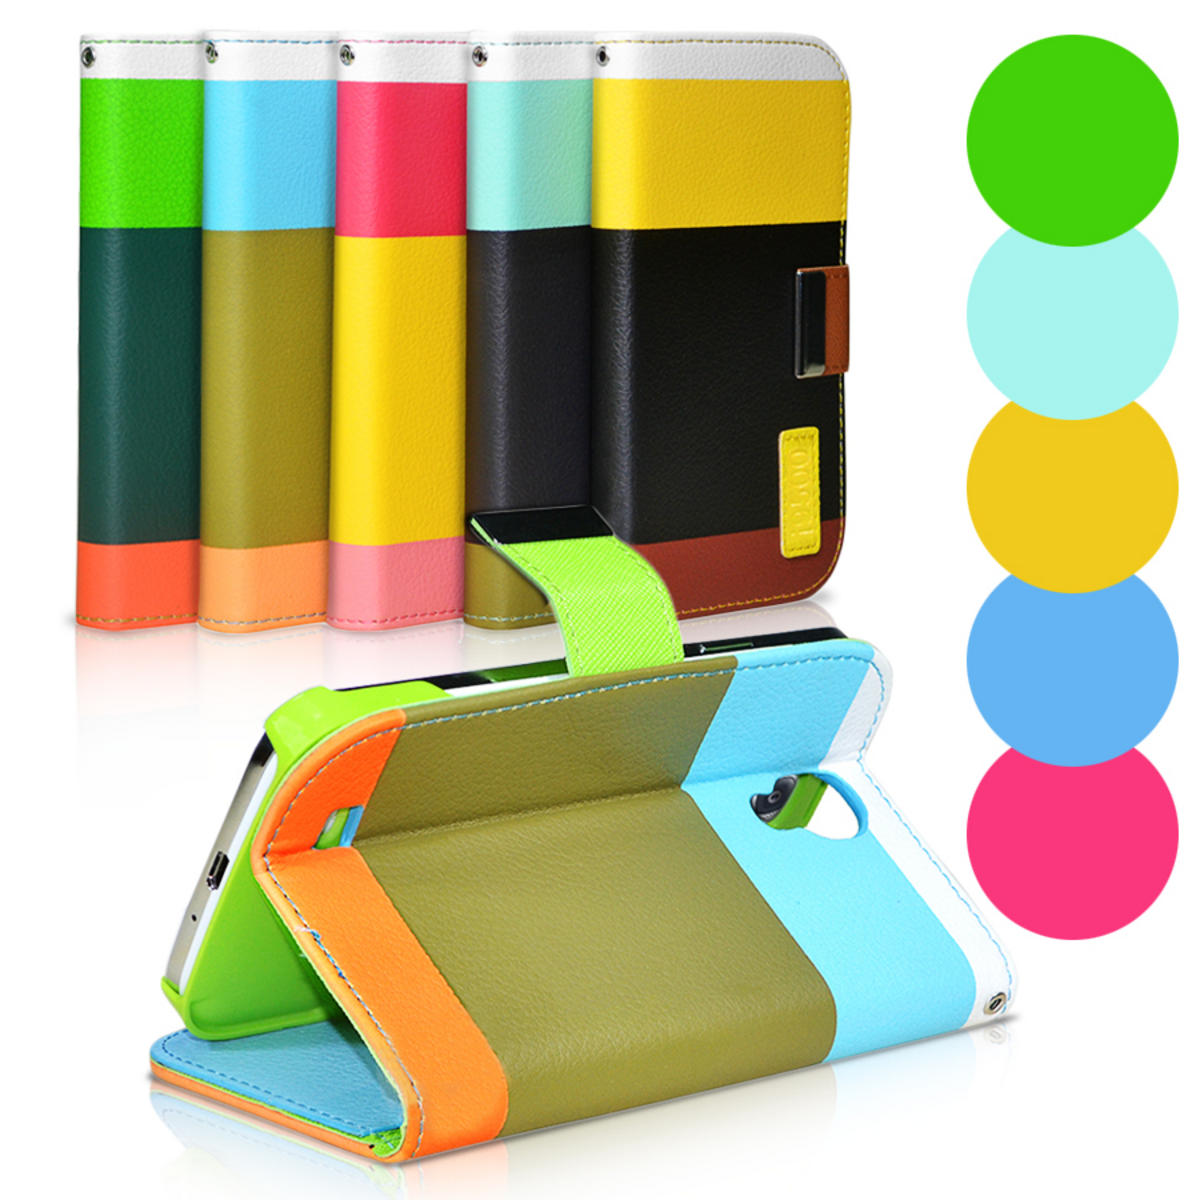 Hybrid Leather Wallet Flip Stand Case Cover For iPhone Note 1 - Yellow